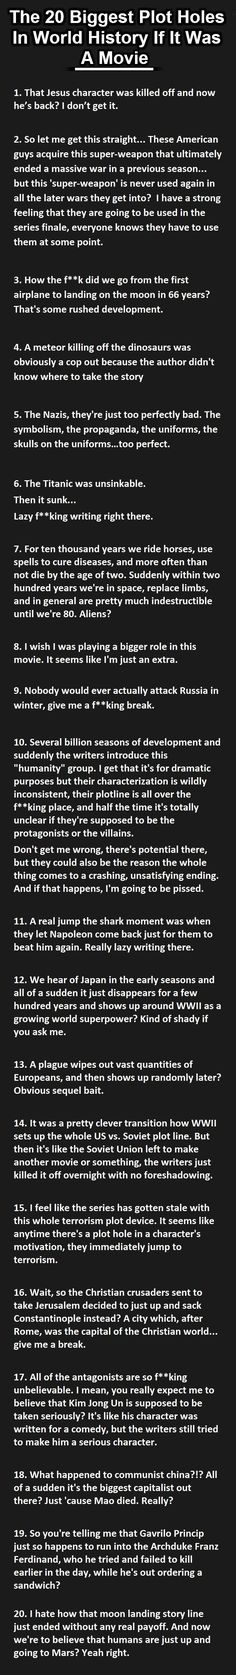 20 Biggest Plot Holes In World History. The Titanic One Is So True. My inner history nerd and cinema addict is completely satisfied! My inner history nerd and cinema addict is completely satisfied! History Jokes, History Facts, Funny History, History Major, World History, Die Titanic, Plot Holes, What Do You Mean, Thats The Way